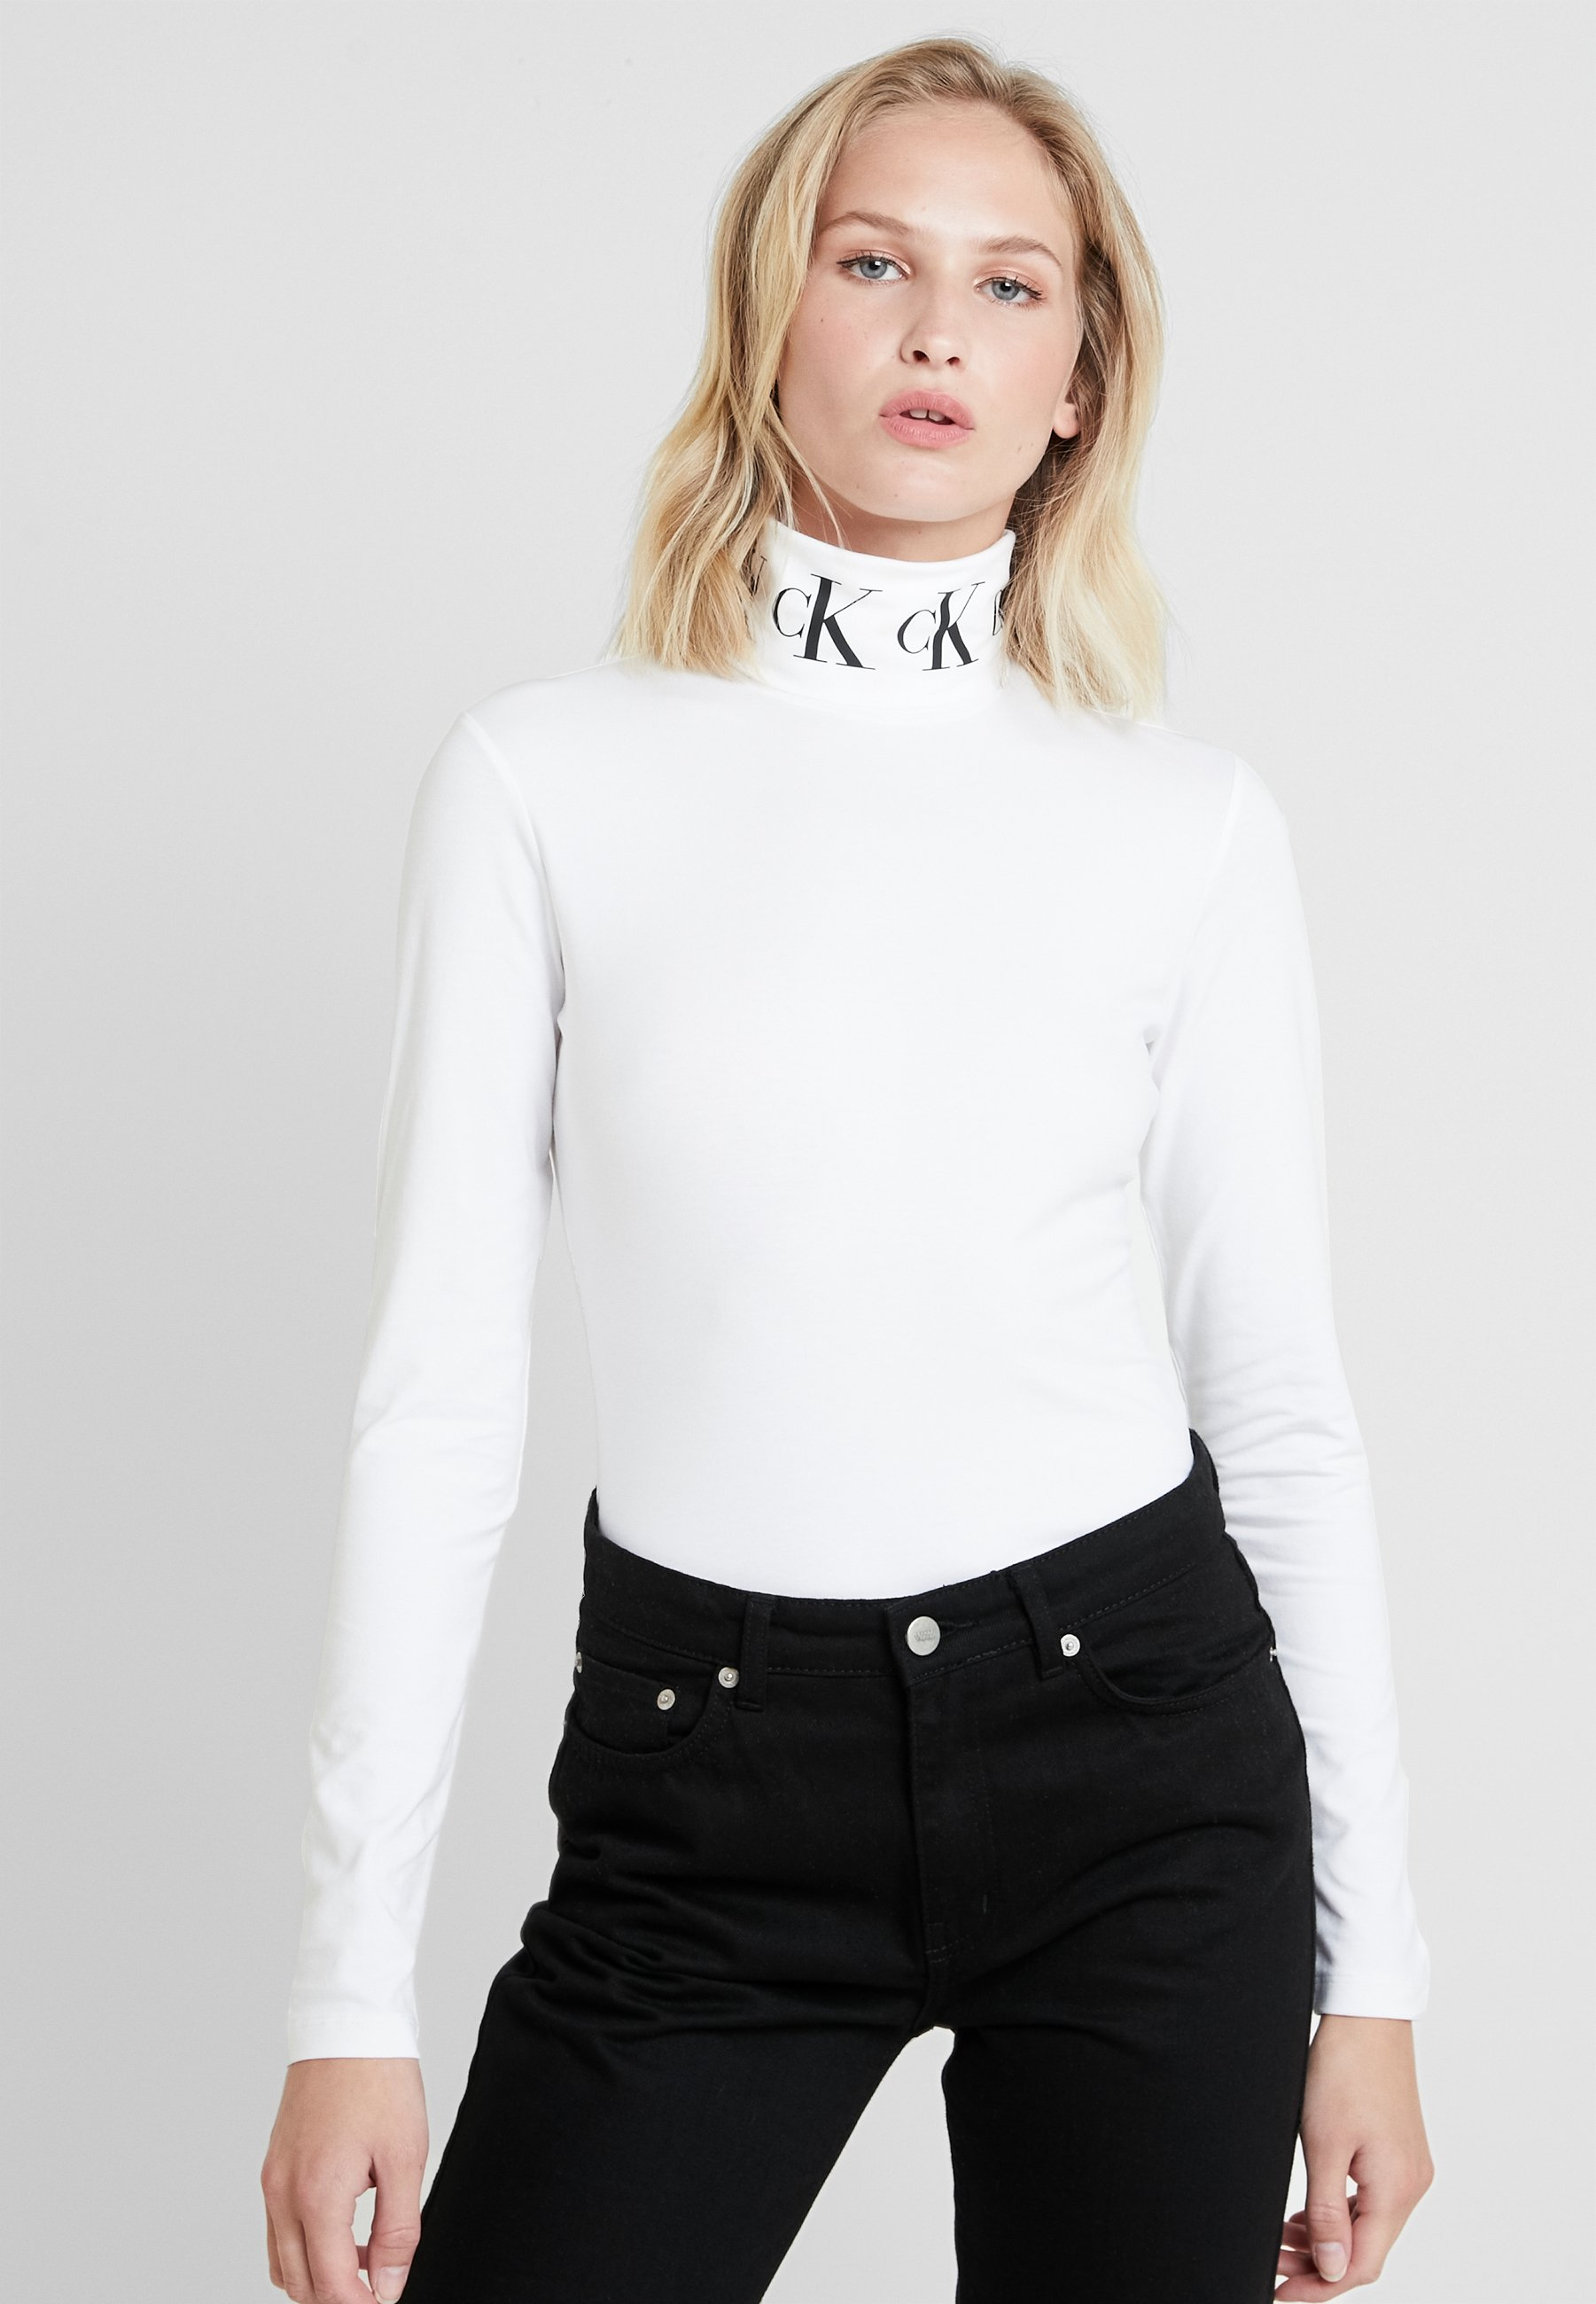 MONOGRAM manches Klein white shirt bright ROLL longues NECKT TAPE Calvin Jeans à 4LjA53R